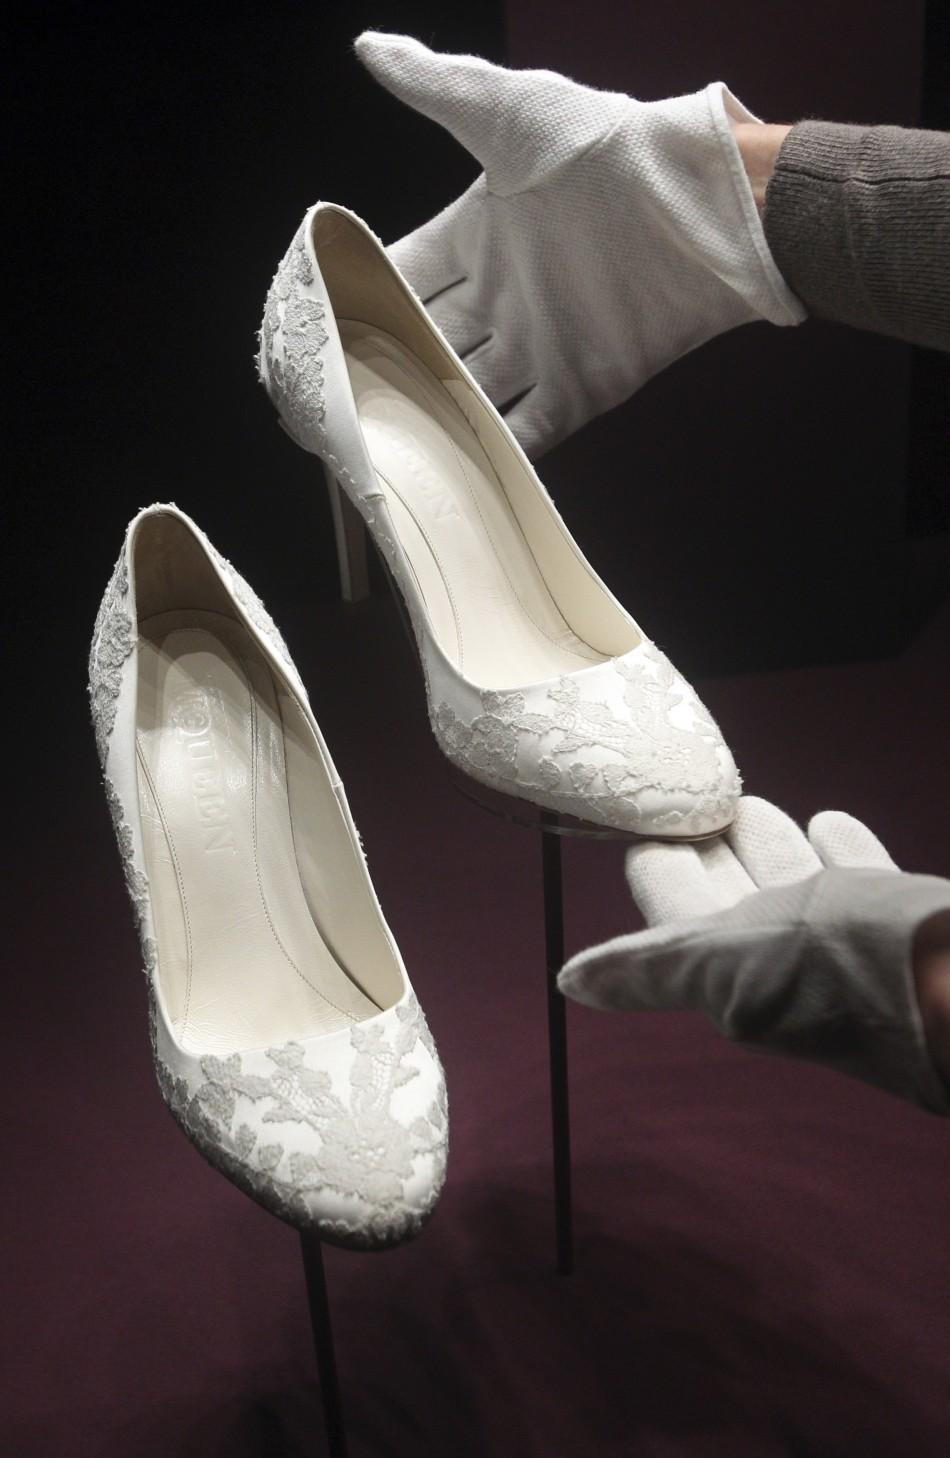 The bridal shoes of Britain's Catherine, Duchess of Cambridge are seen at Buckingham Palace in London